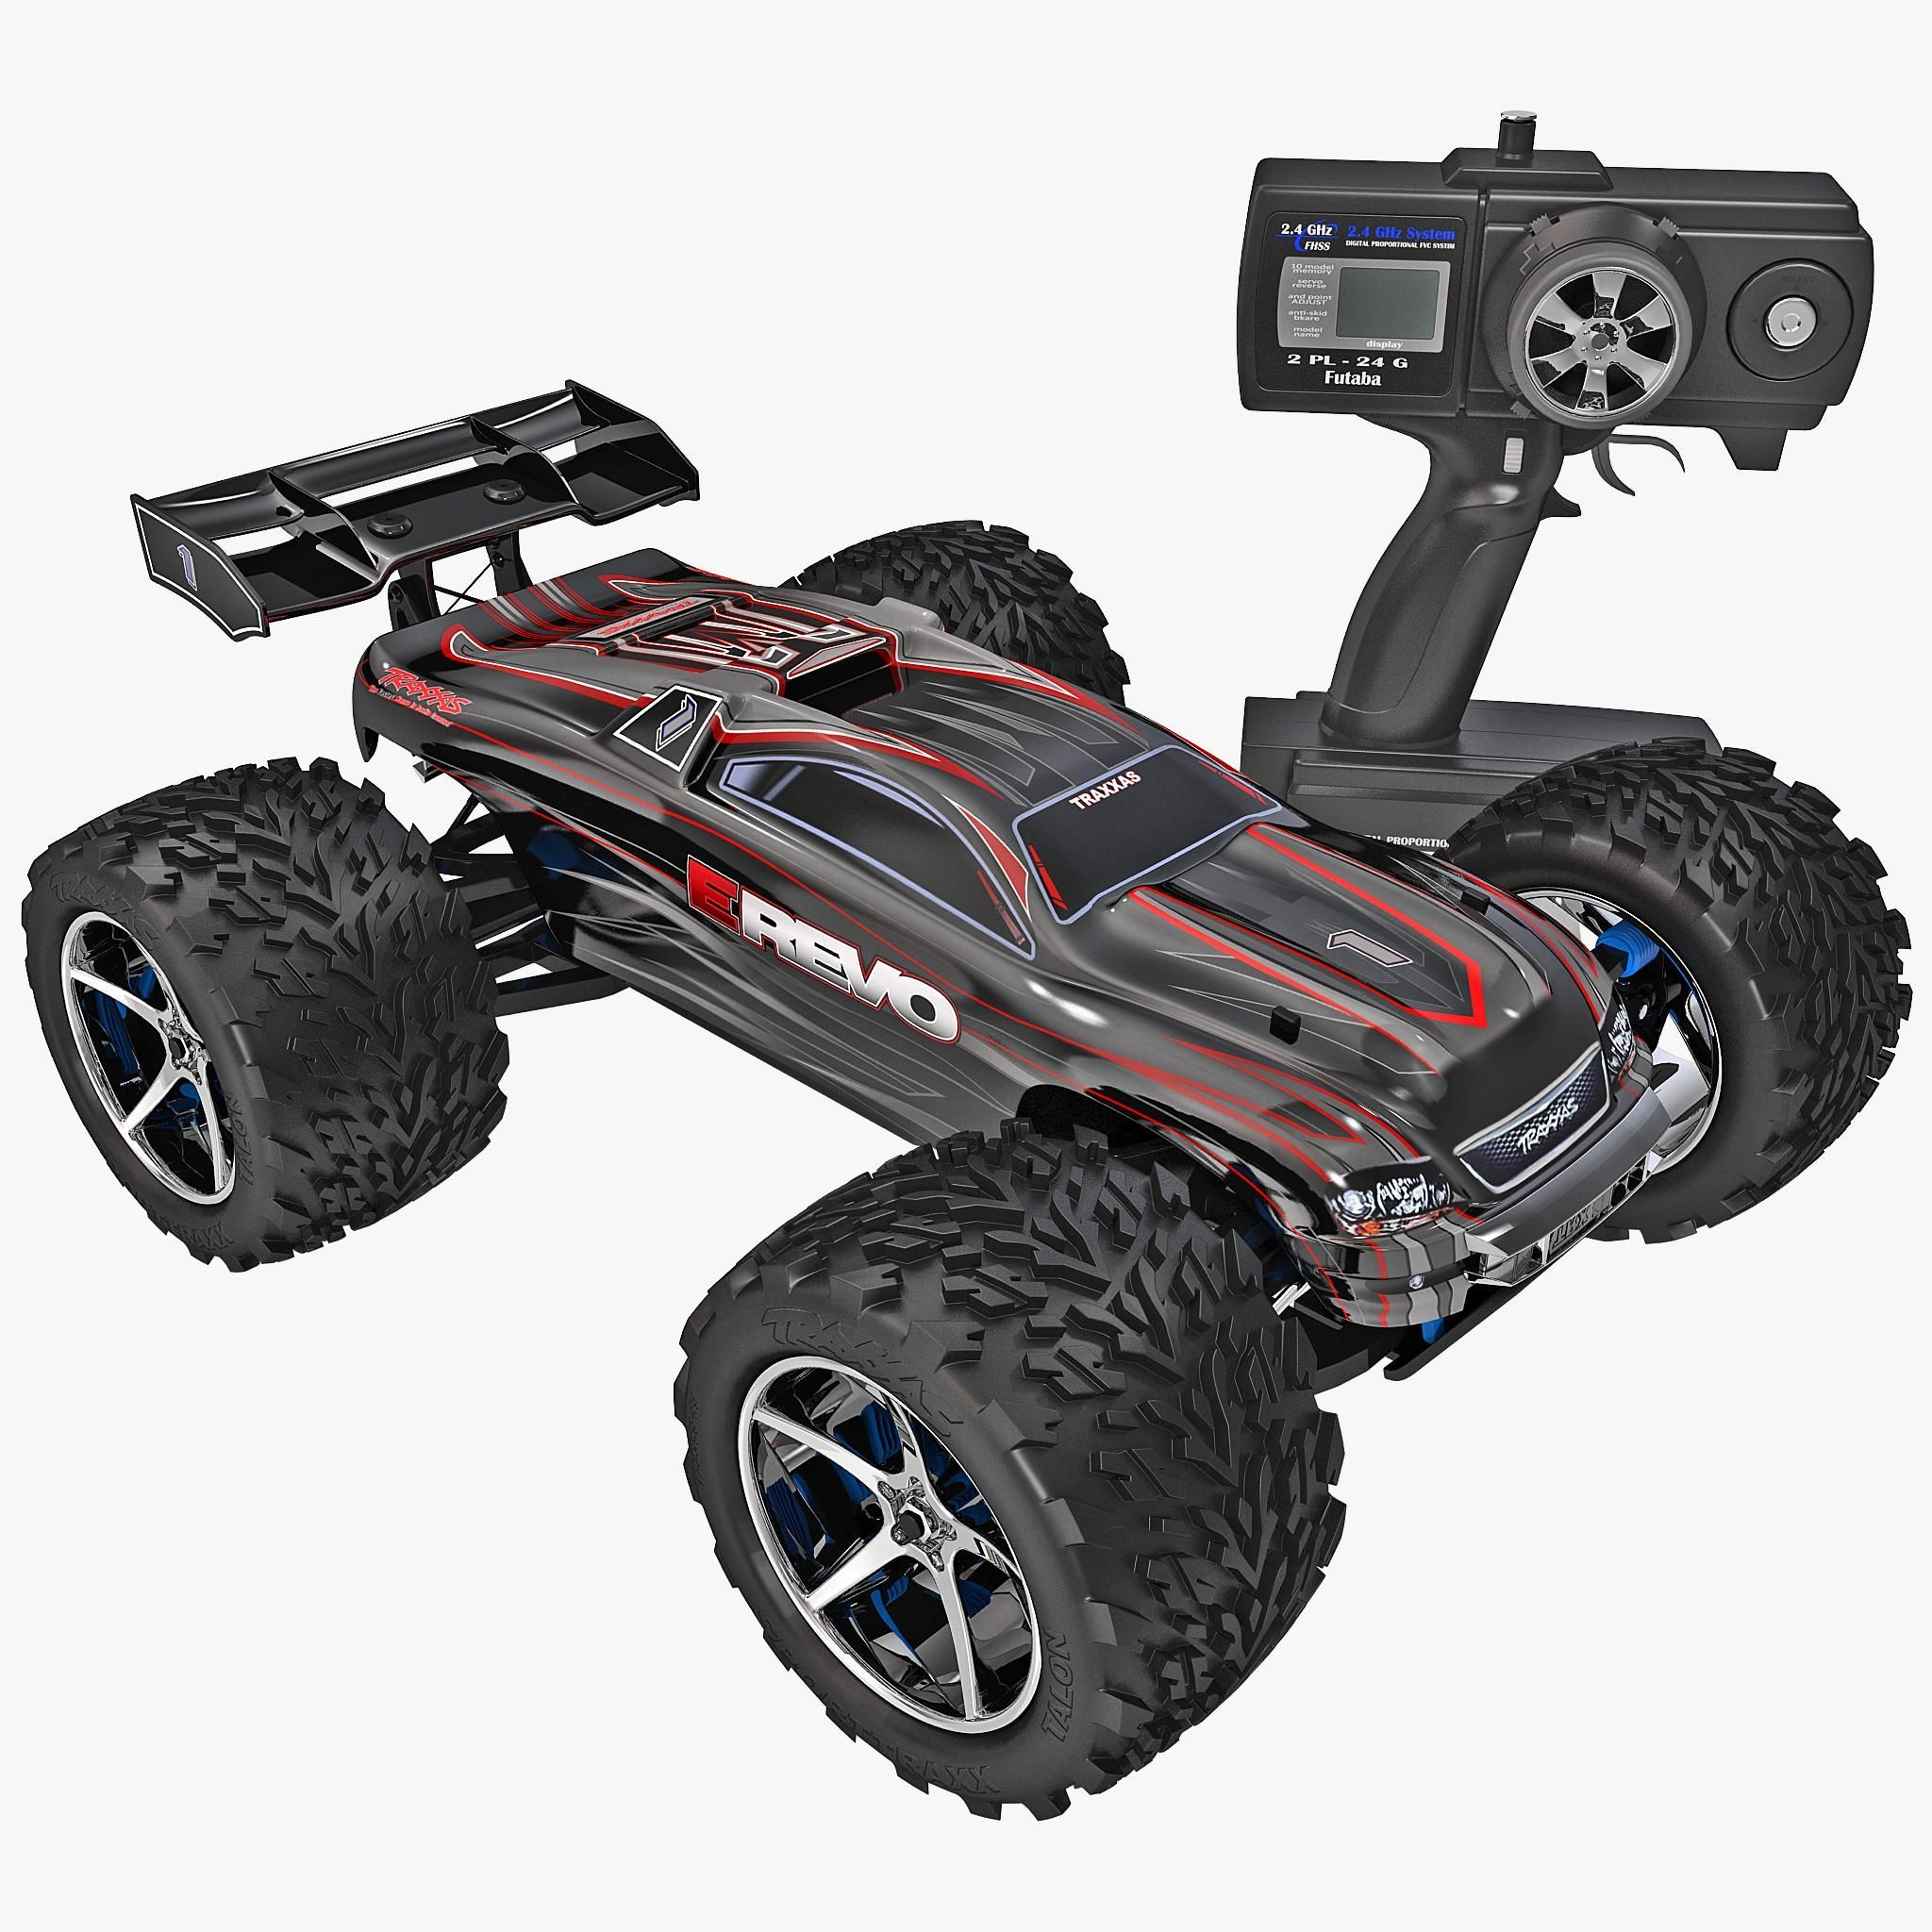 Pin by Die 27 on zachary in 2020 Radio controlled cars